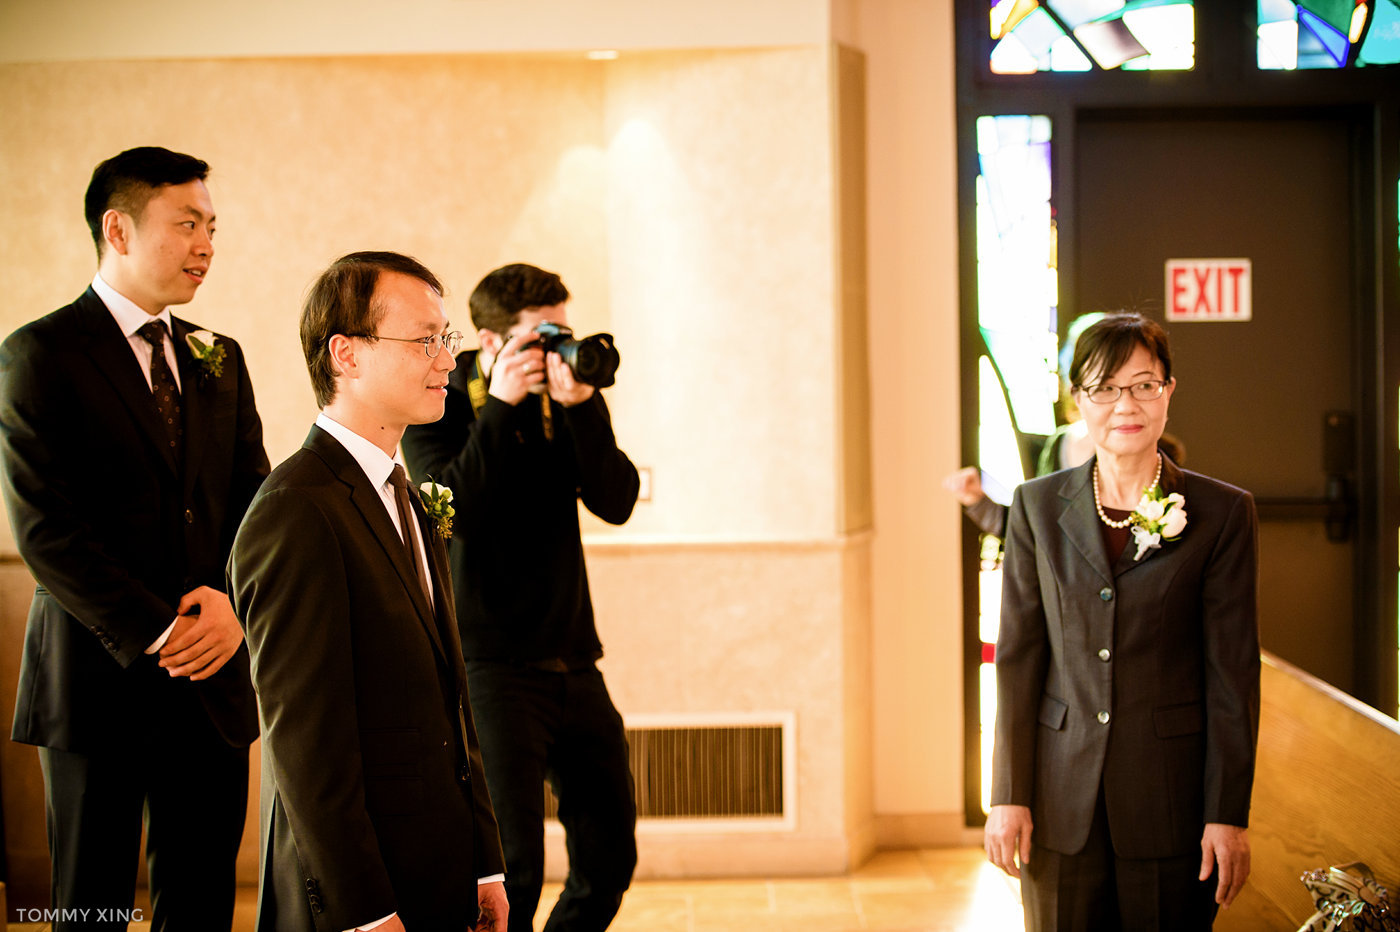 Qinglu Meng & Daozheng Chen Wedding Slideshow-111-E.JPG